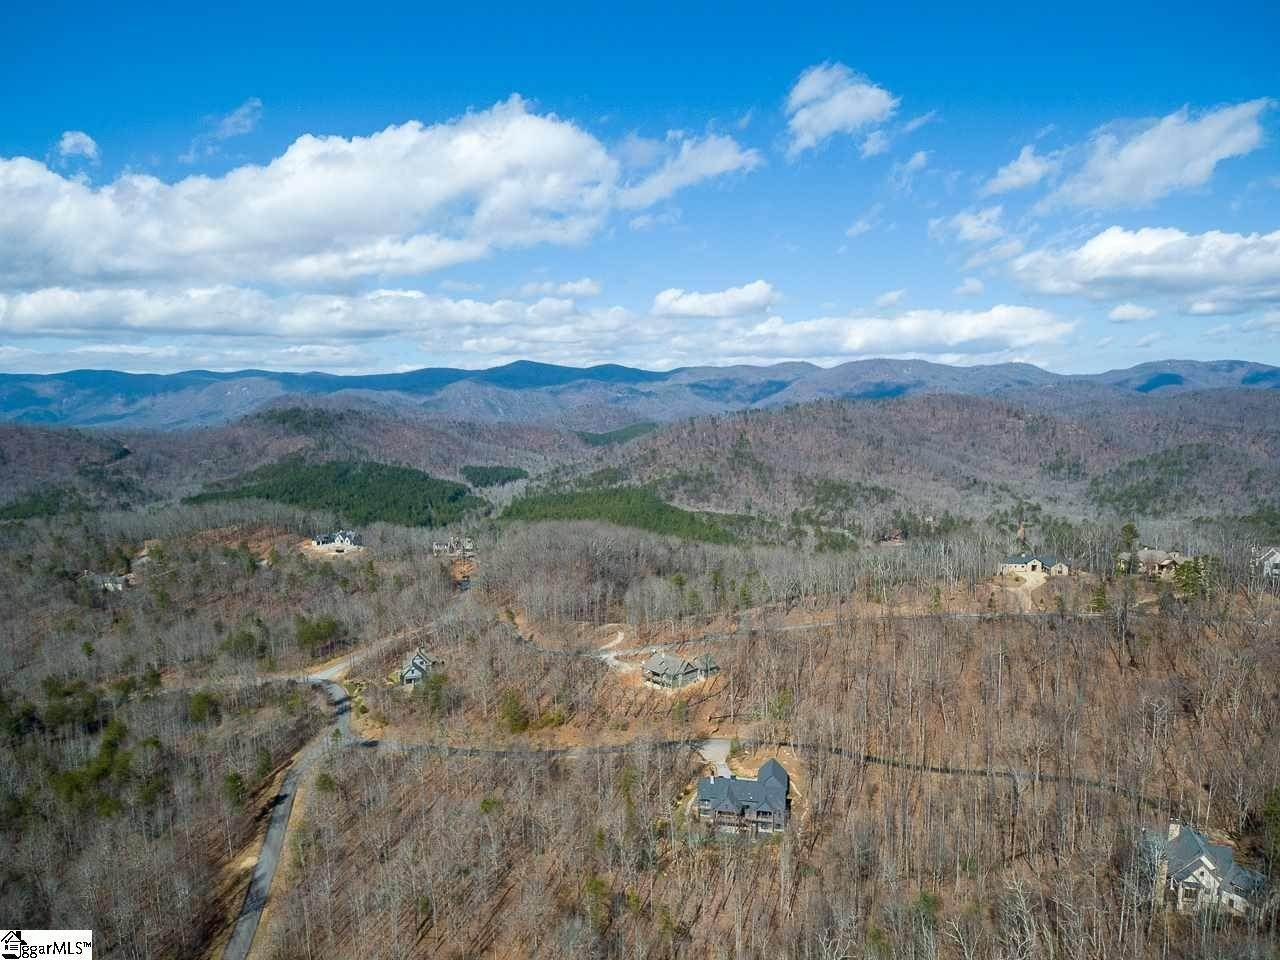 17. Residential Lot for Sale at The Cliffs At Mountain Park, Marietta, SC 29661